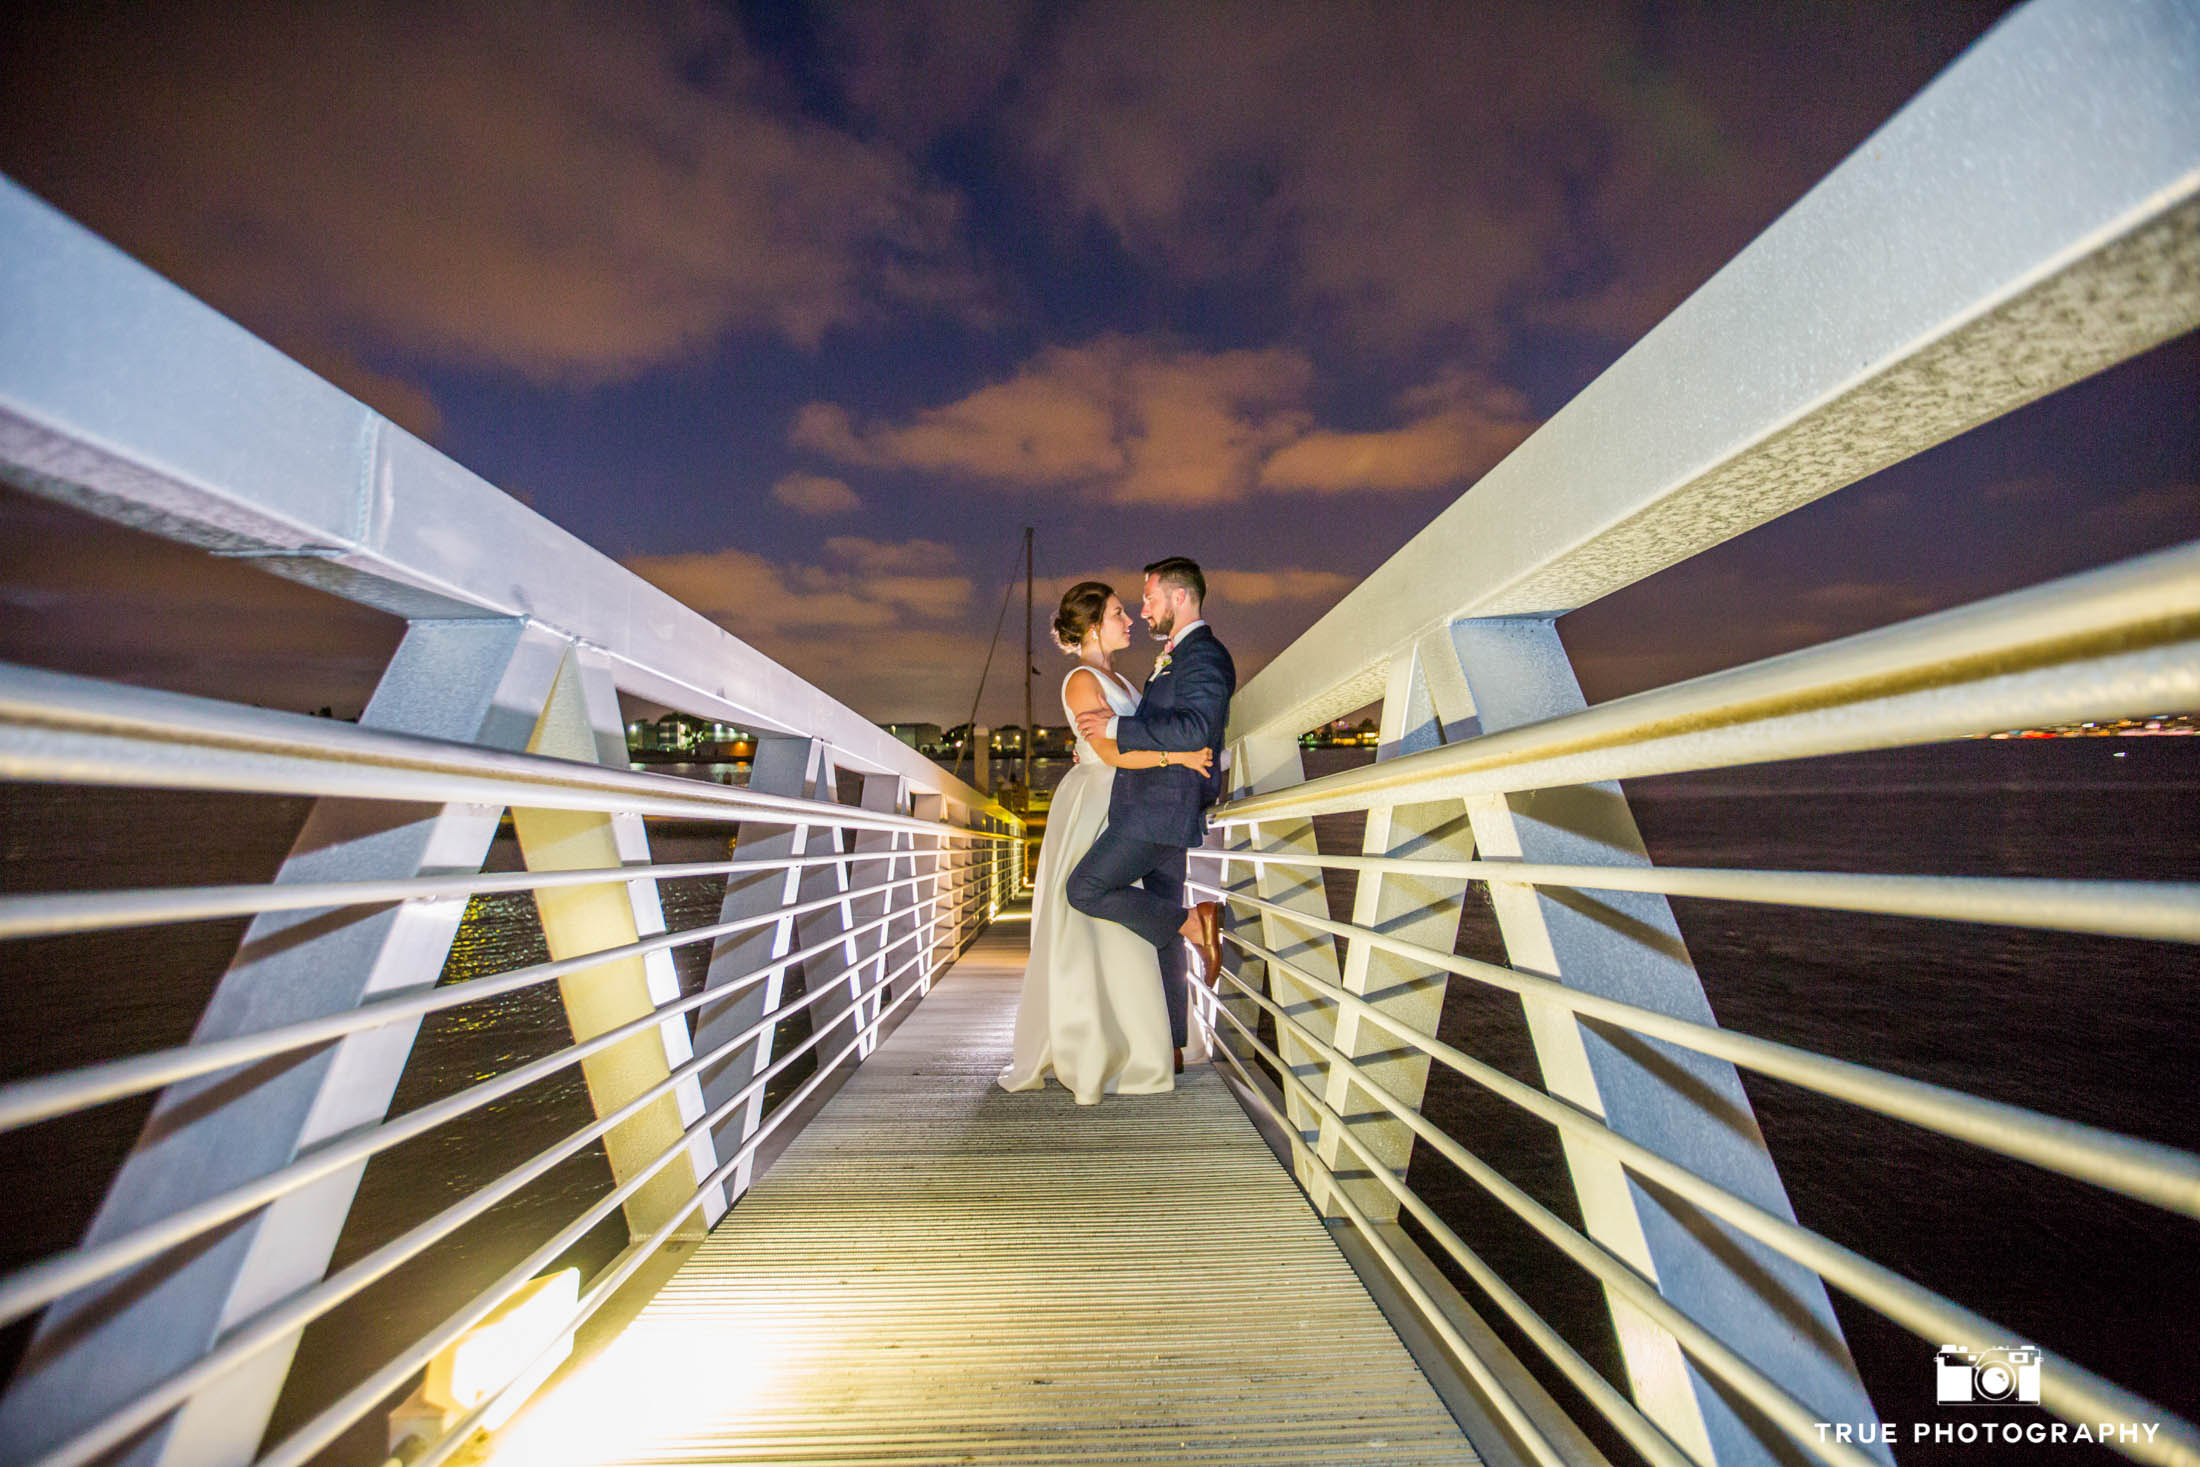 Night photography of bride and groom on a pier